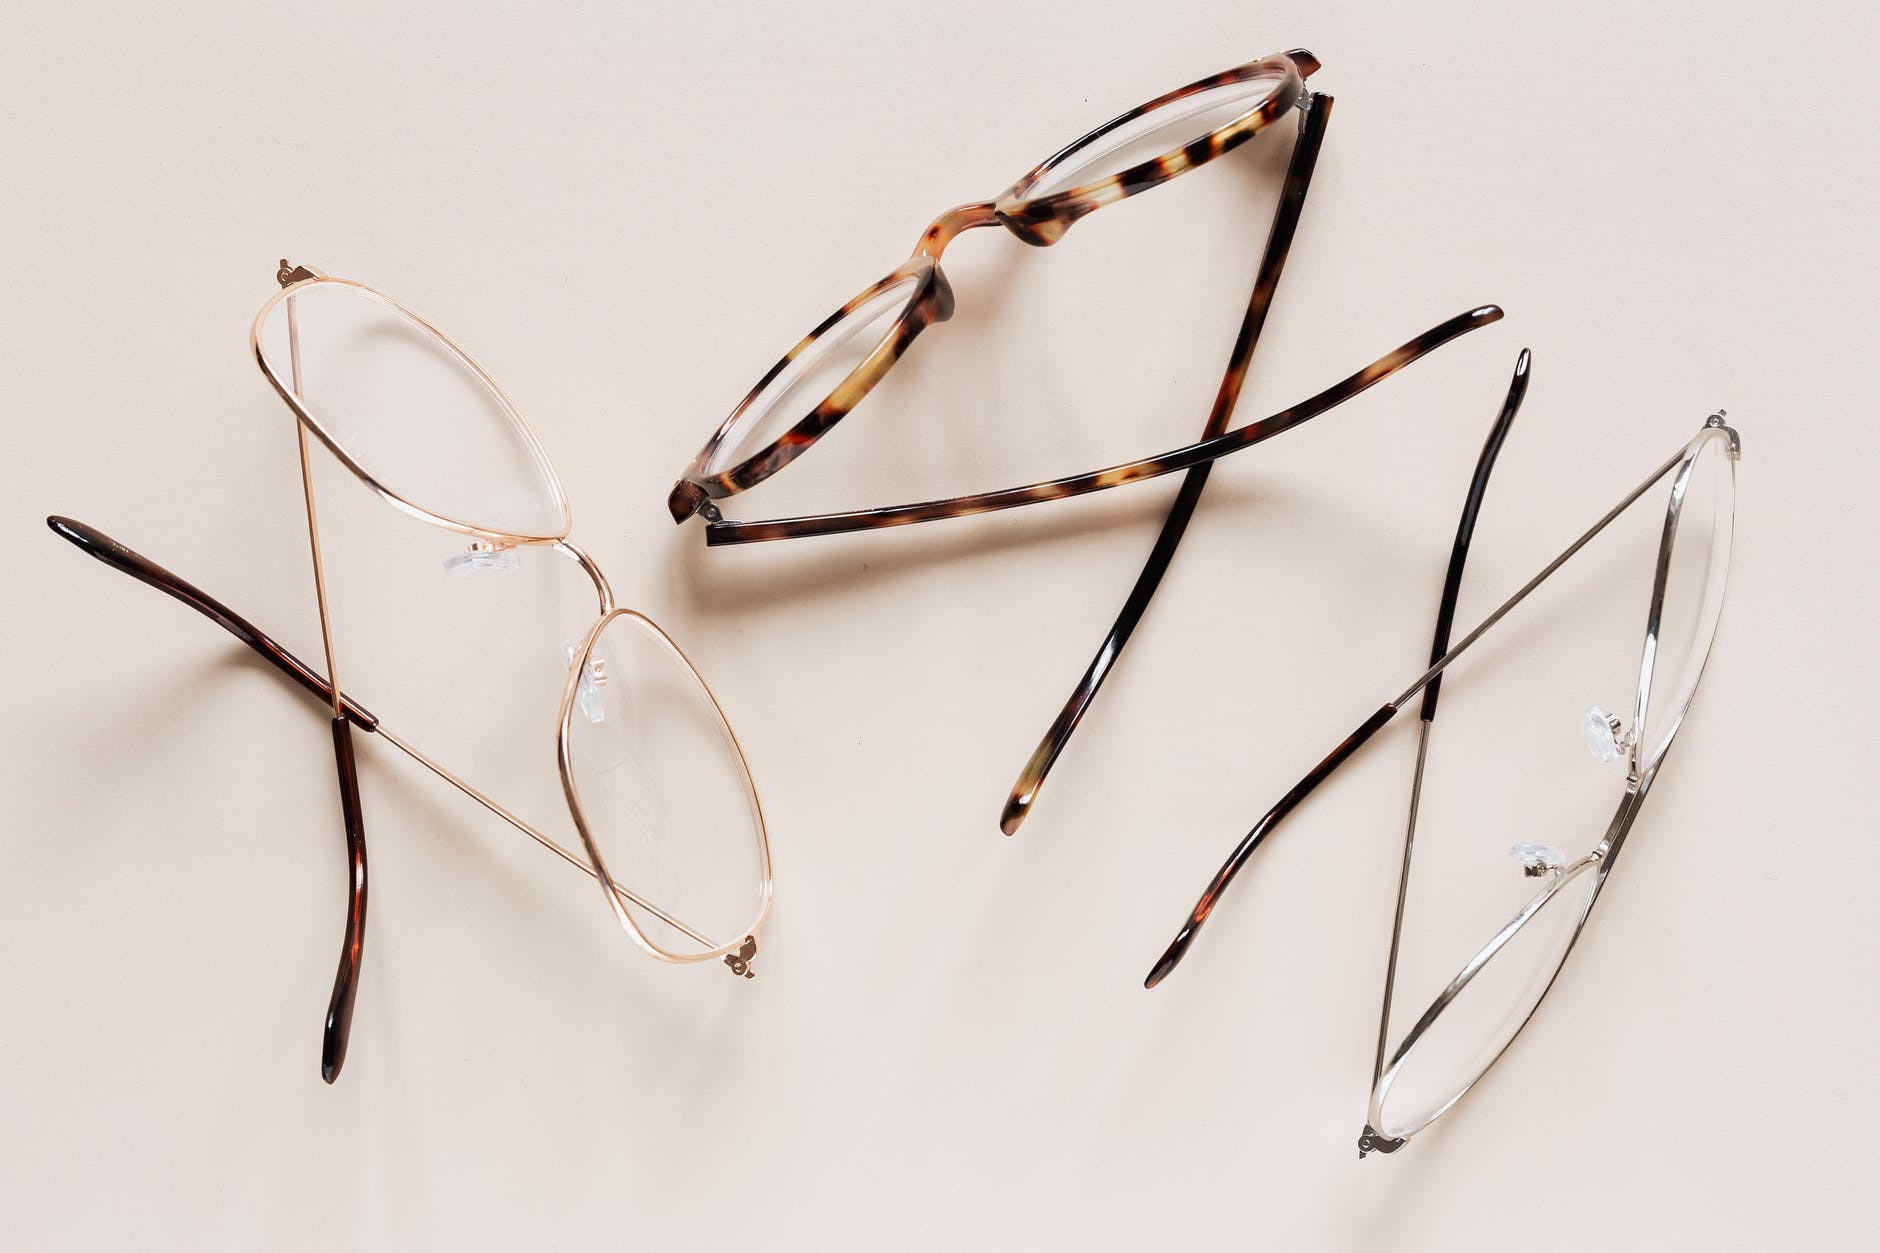 stylish eyeglasses arranged on white desk